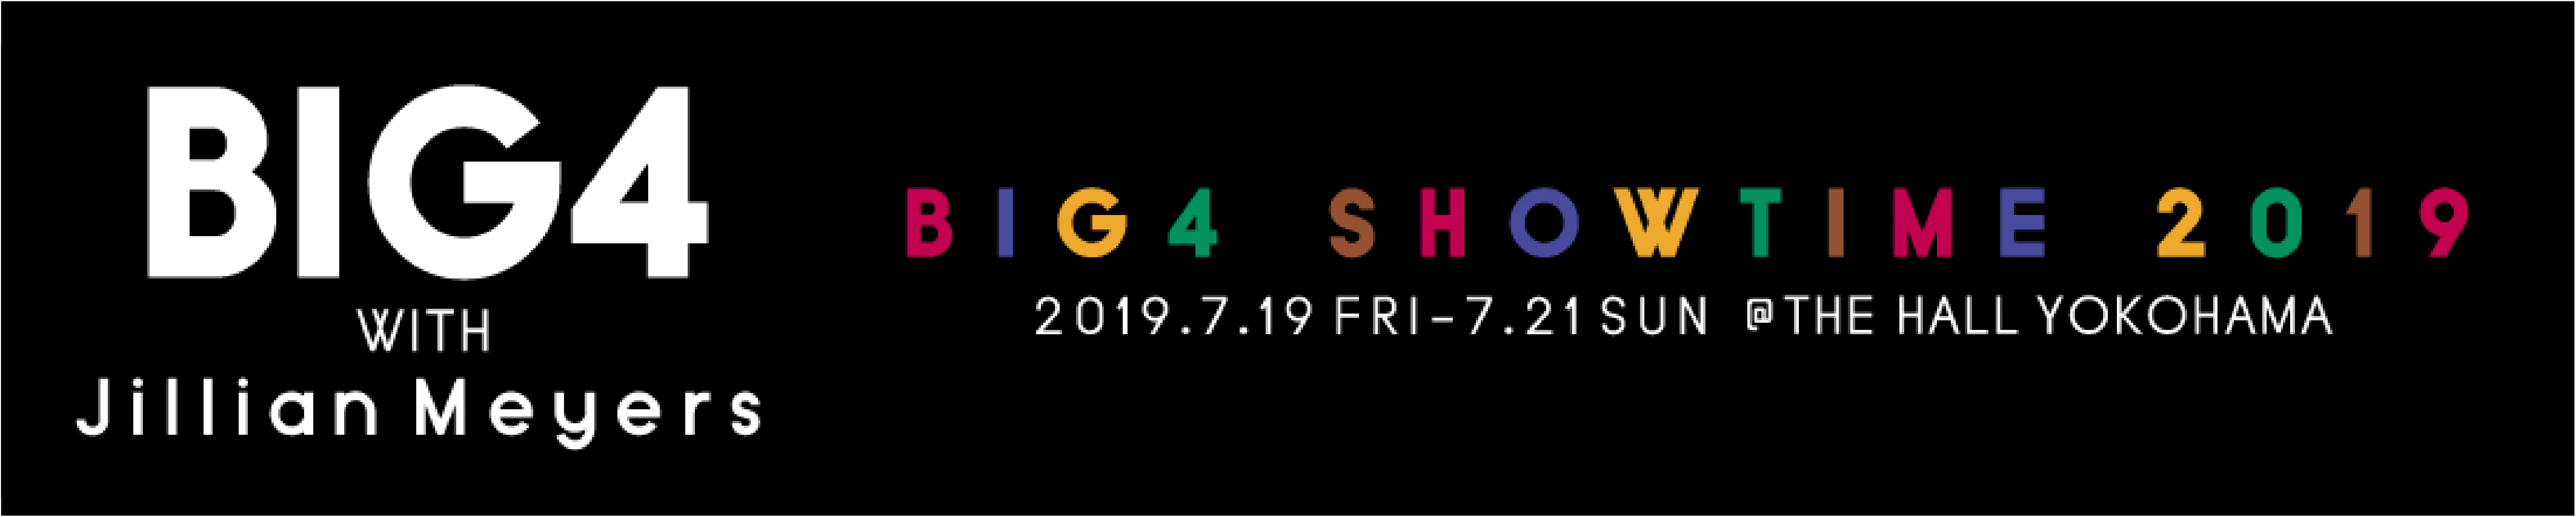 "BIG4 SHOWTIME 2019 ""BIG4 with Jillian Meyers"" イベントギャラリー"